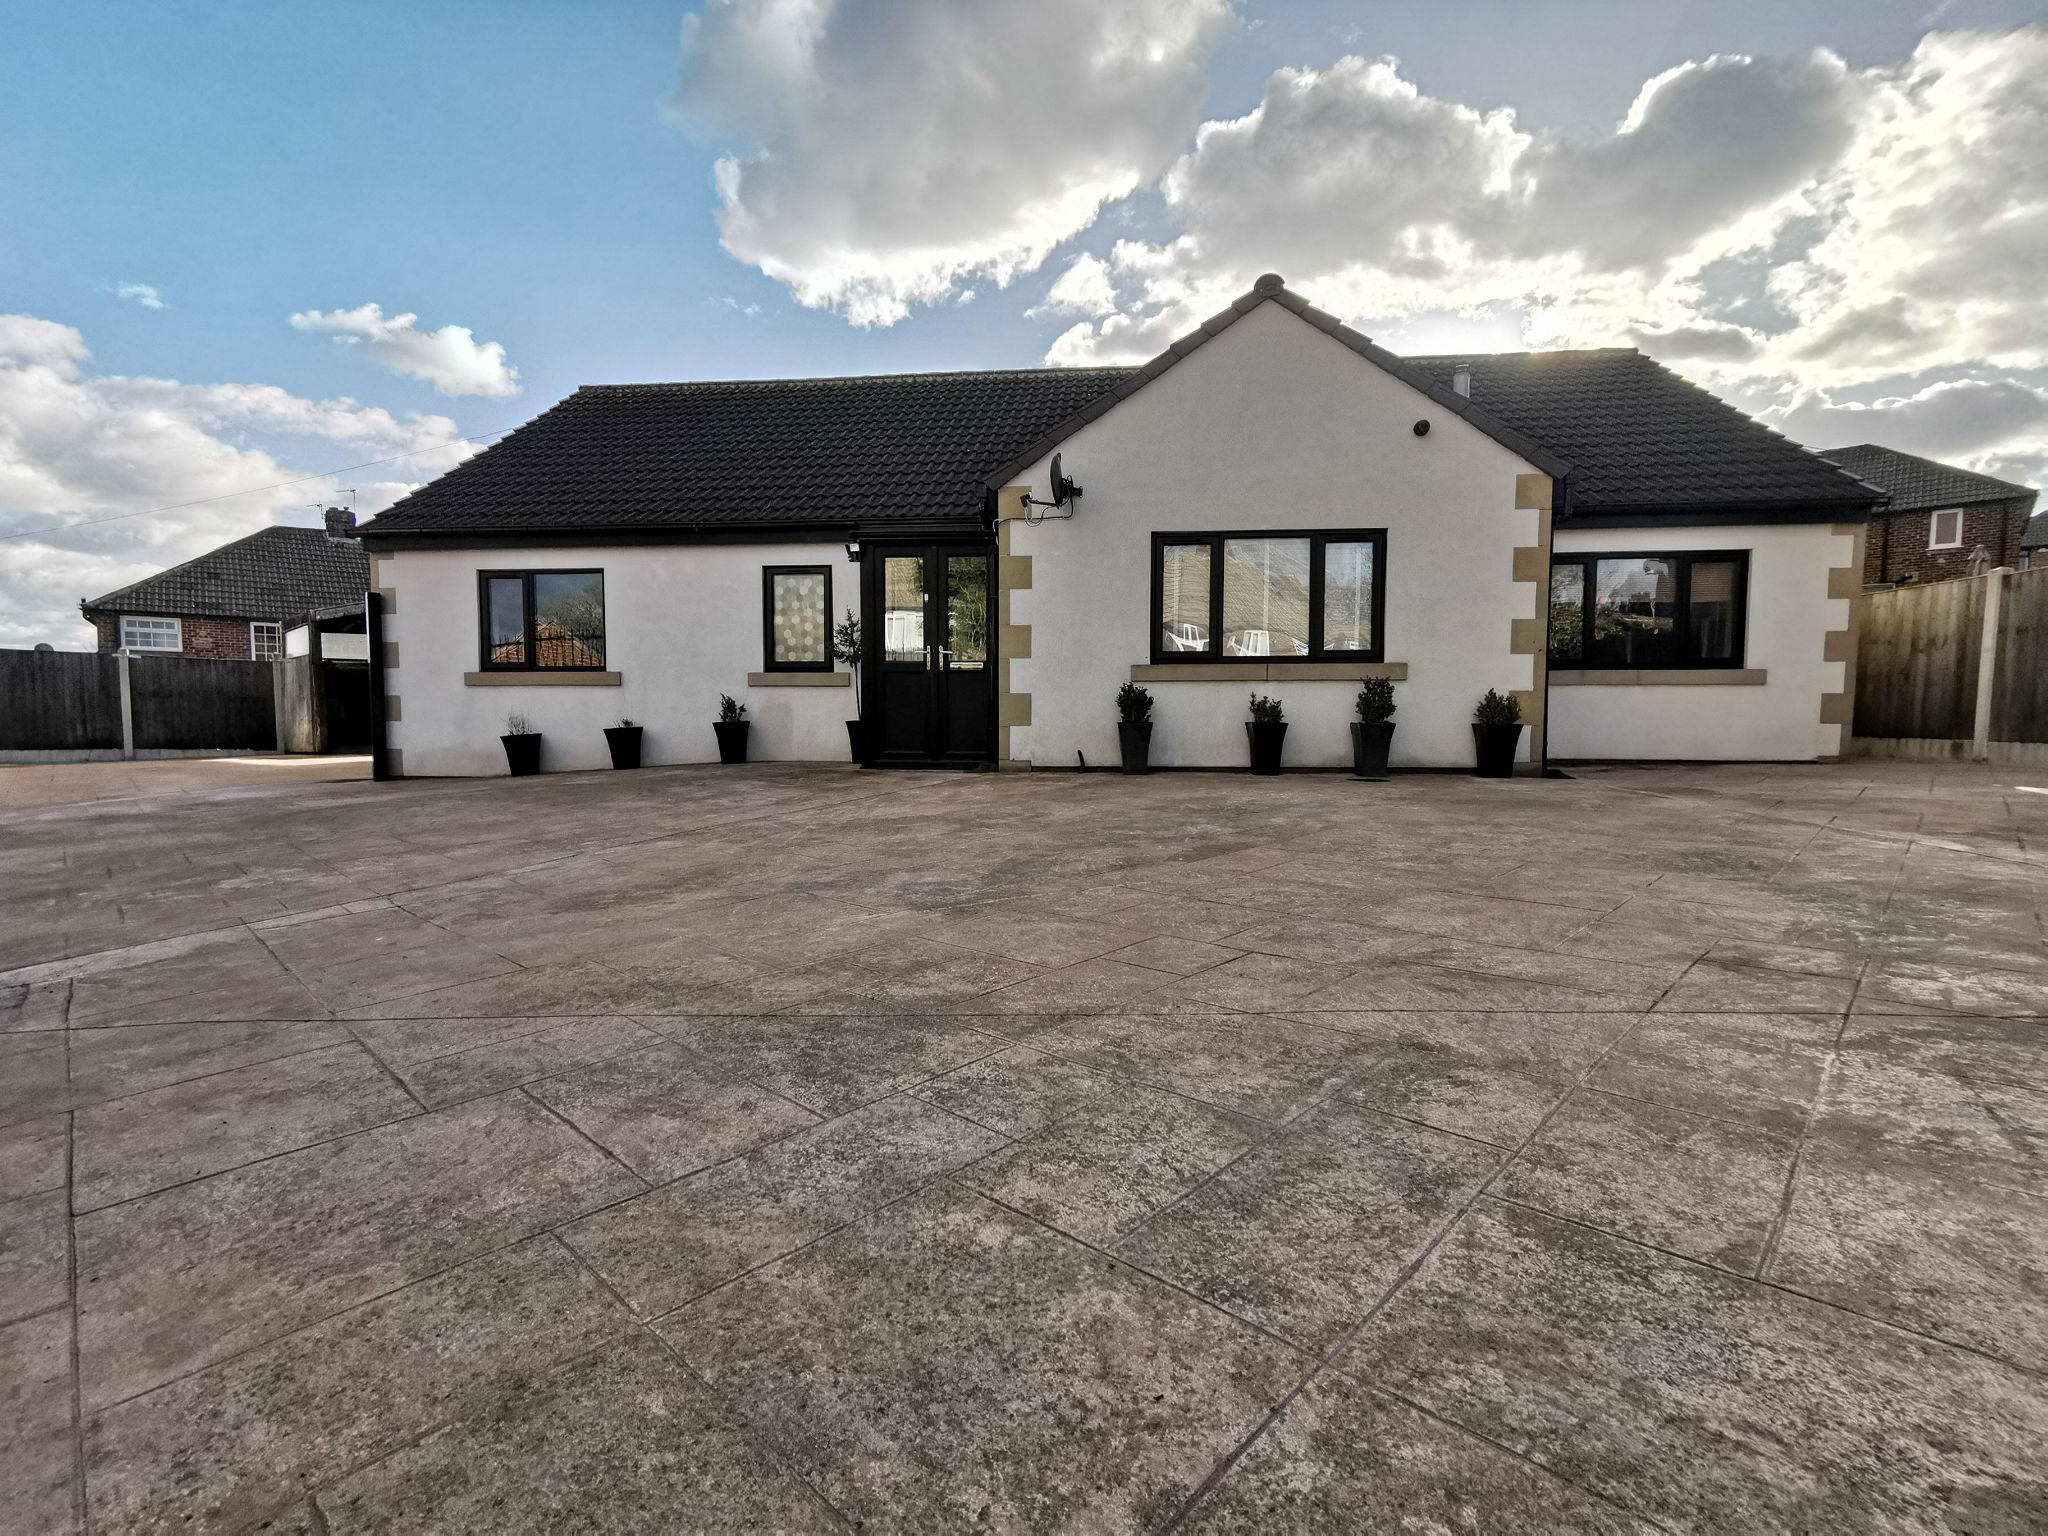 6 bedroom detached bungalow For Sale in Bradford - Photograph 1.